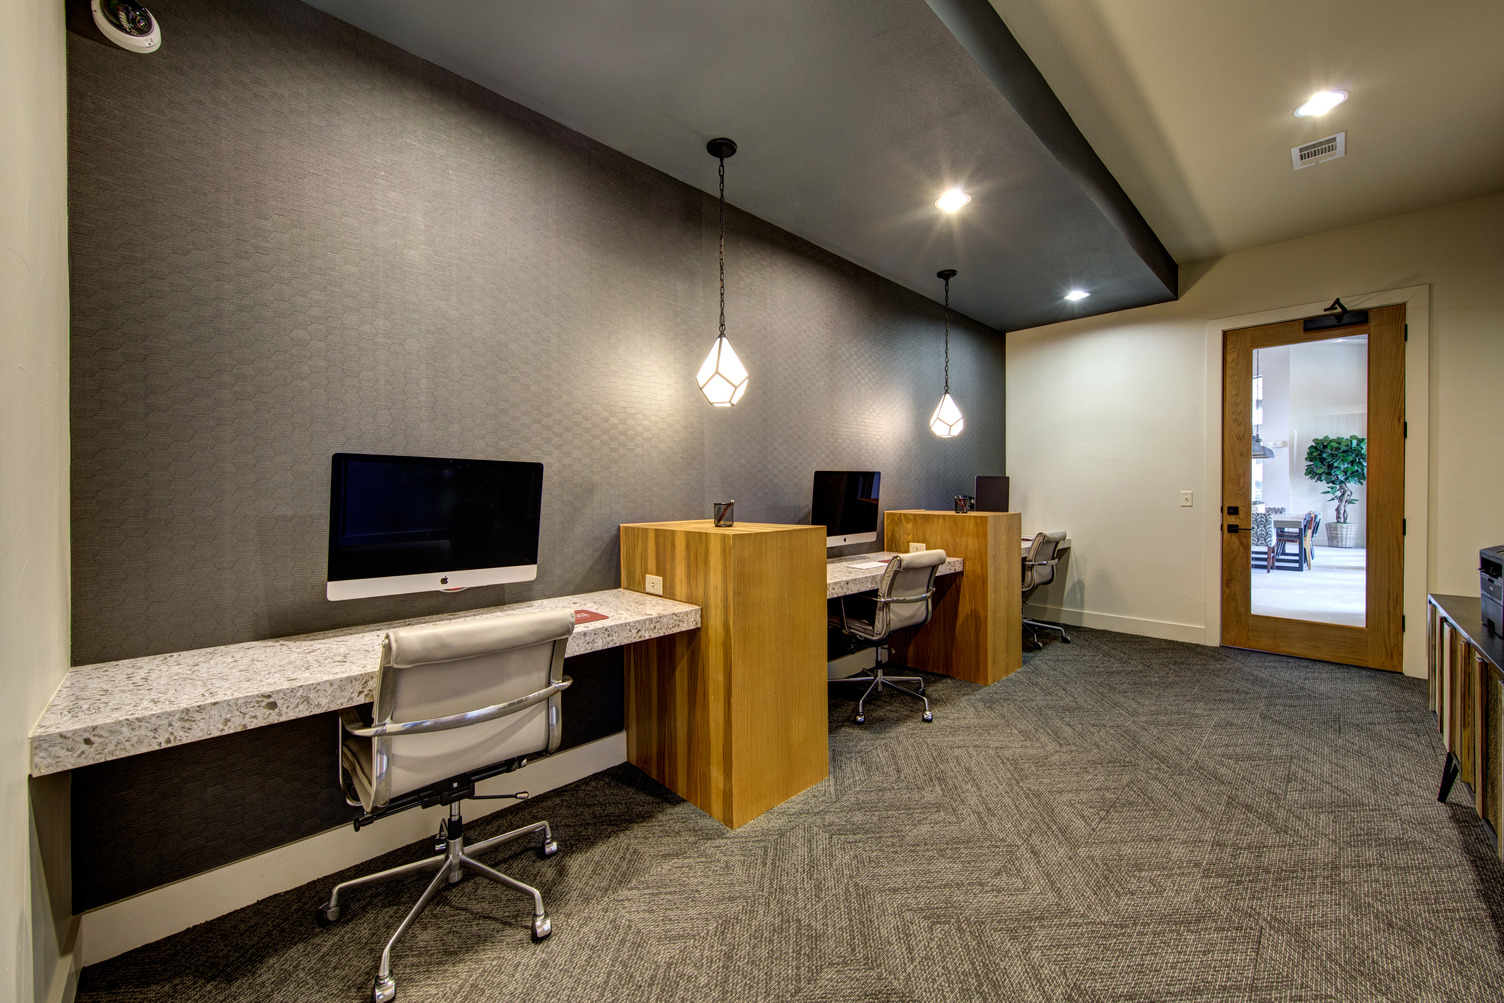 Business center with swivel chairs, three workstations with iMac, and door leading to courtyard